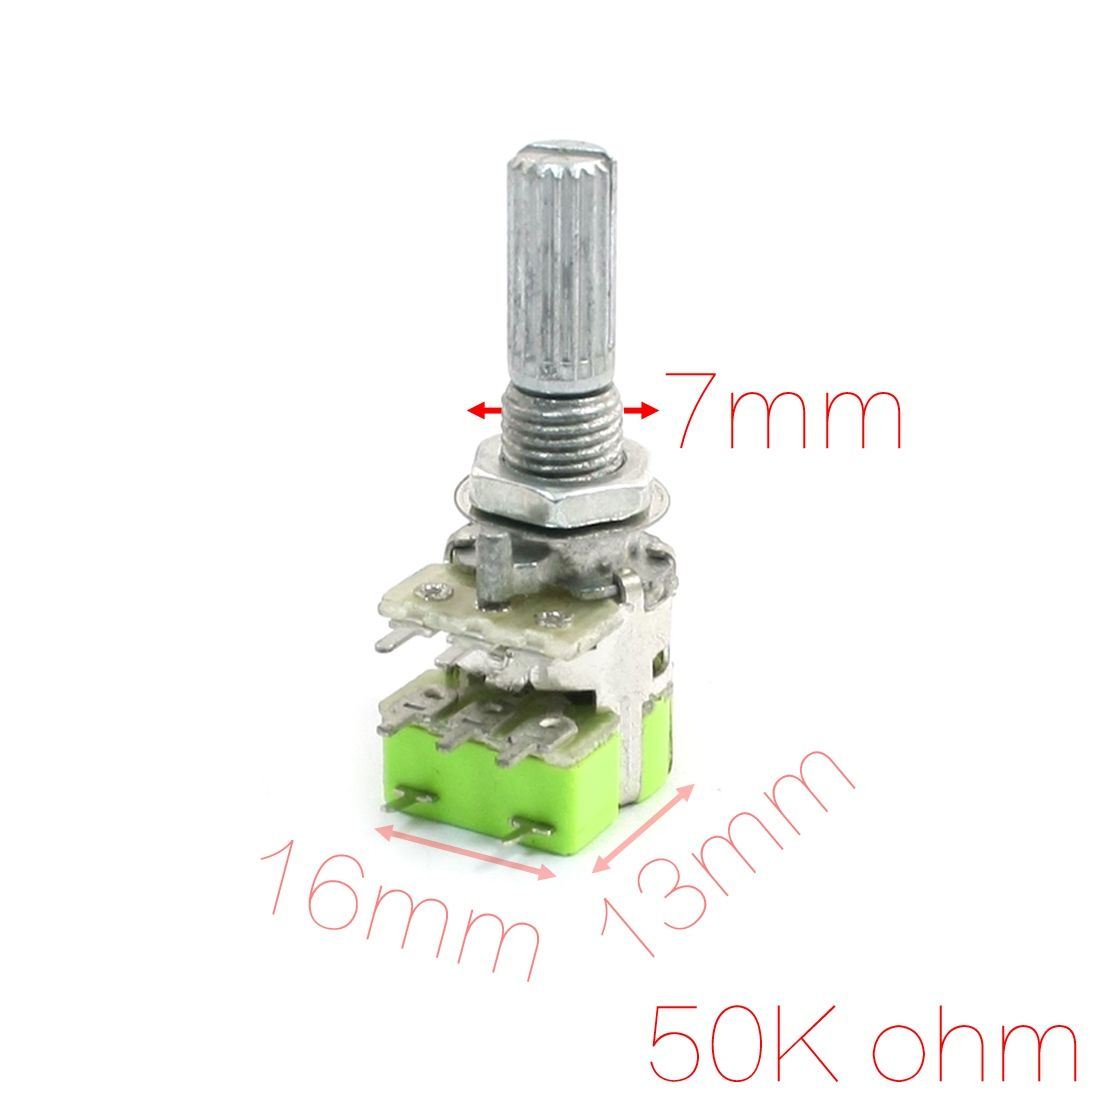 UXCELL Stereo B50k 50K Ohm Dual Linear Taper Volume Control